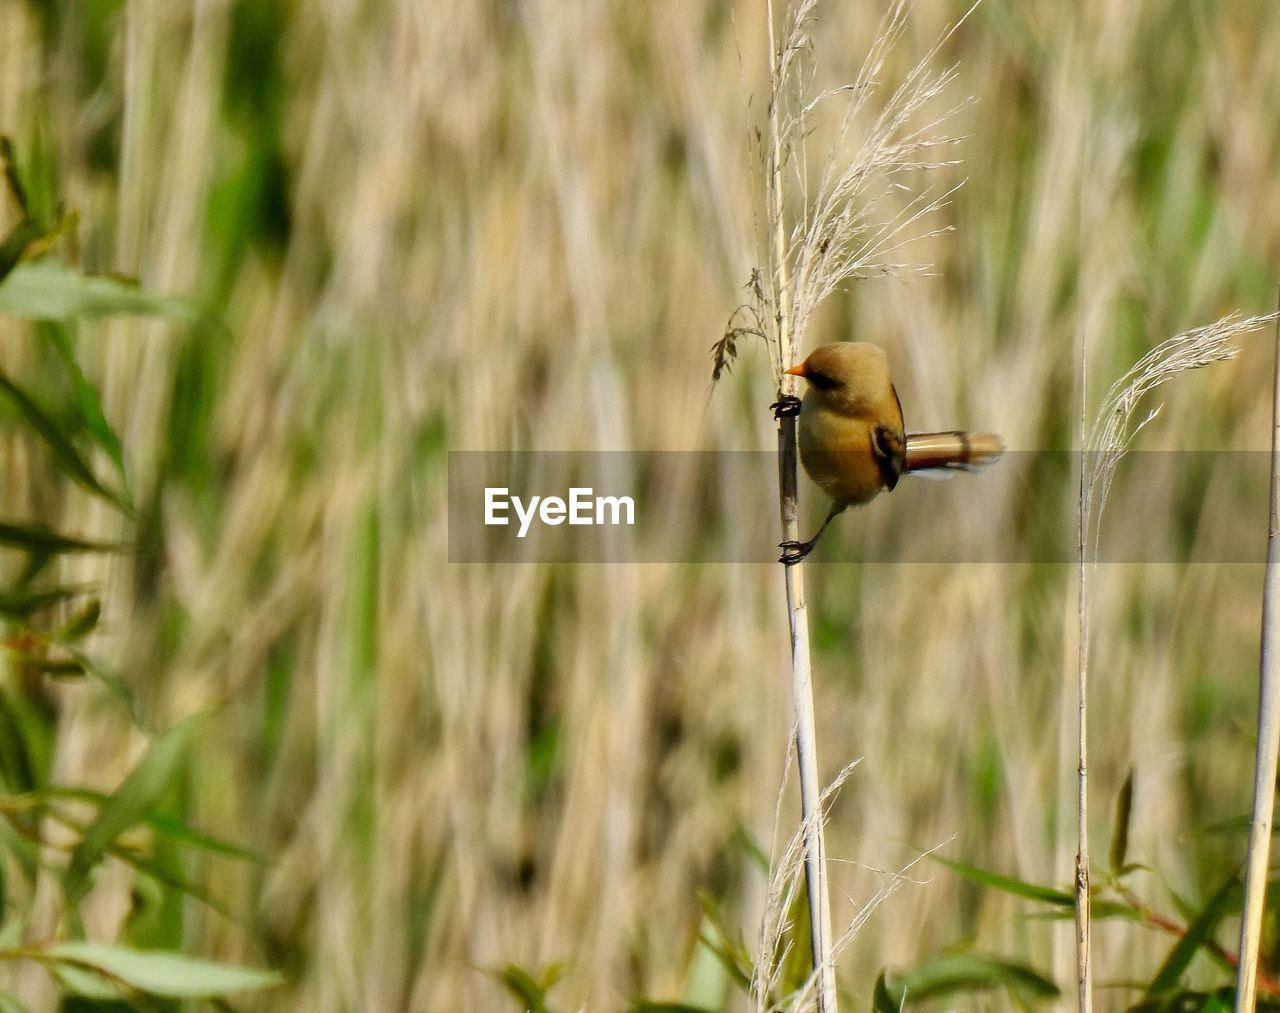 plant, animals in the wild, one animal, animal themes, animal, animal wildlife, bird, nature, day, vertebrate, field, no people, selective focus, land, growth, grass, close-up, focus on foreground, outdoors, beauty in nature